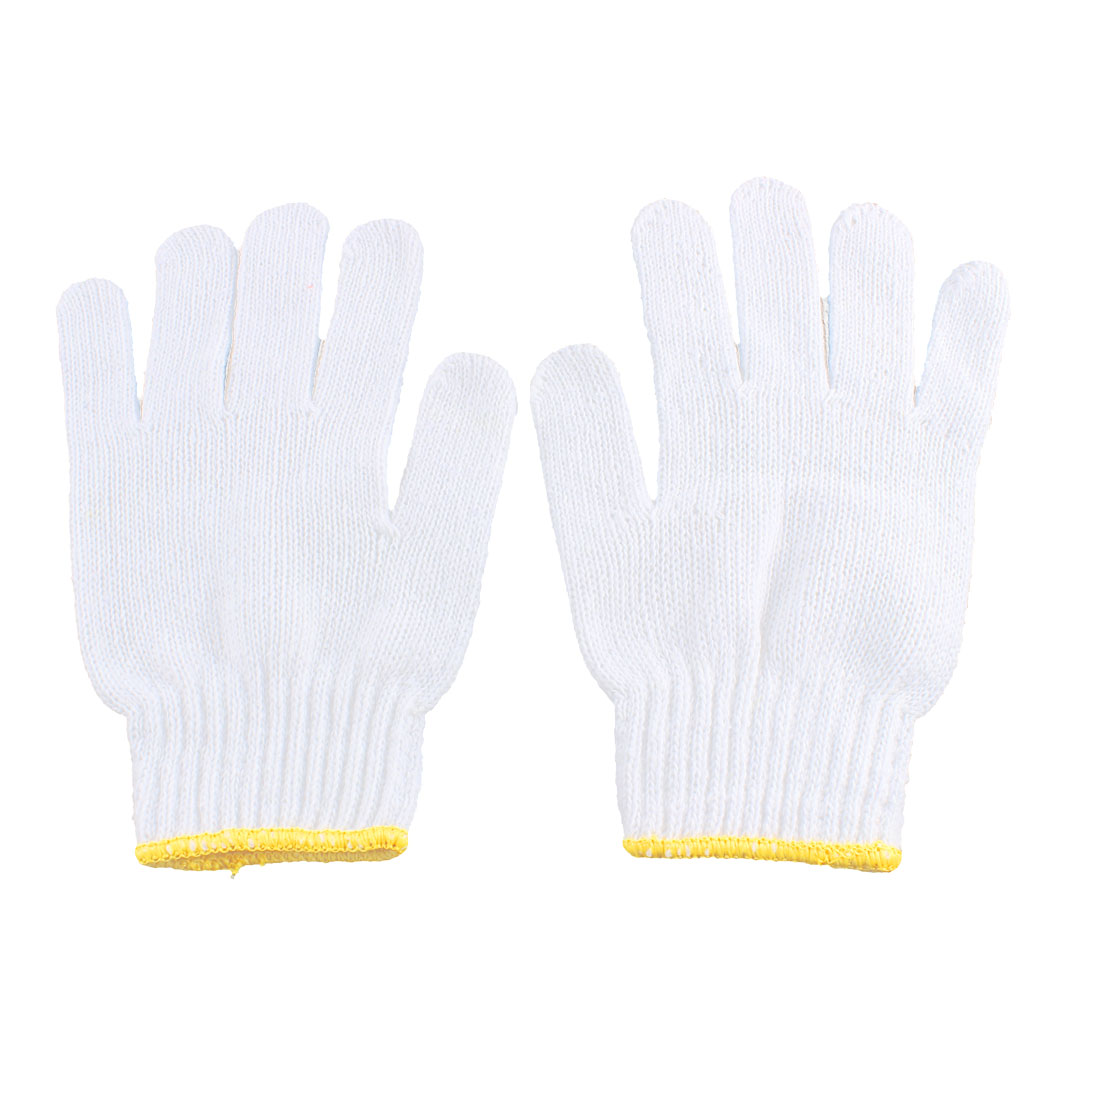 Yellow Rubber Dots Anti-slide Design Elastic Cuff Housework Working Gloves Pair